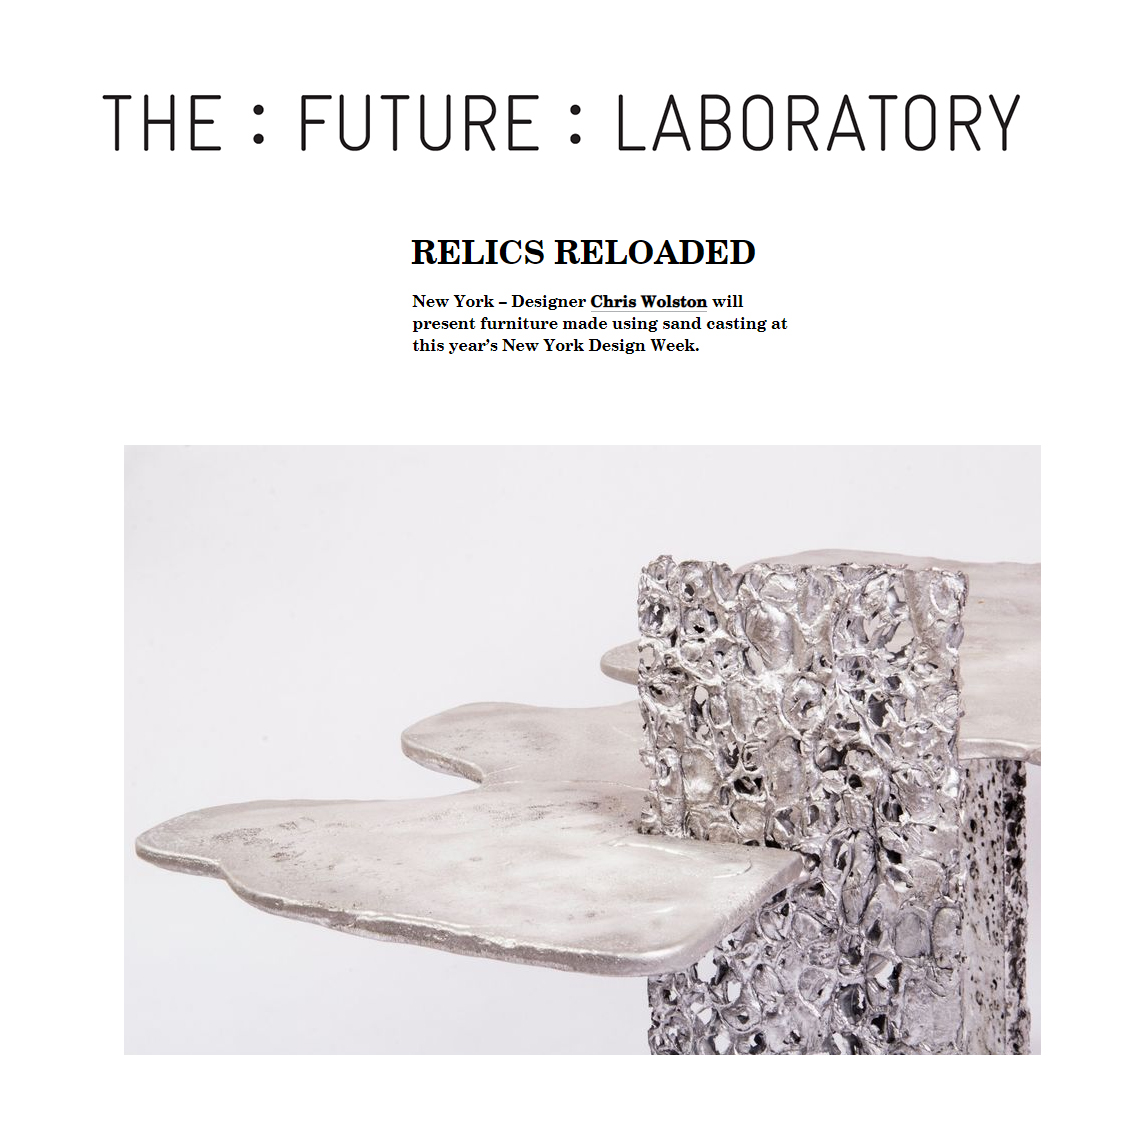 The future laboratory